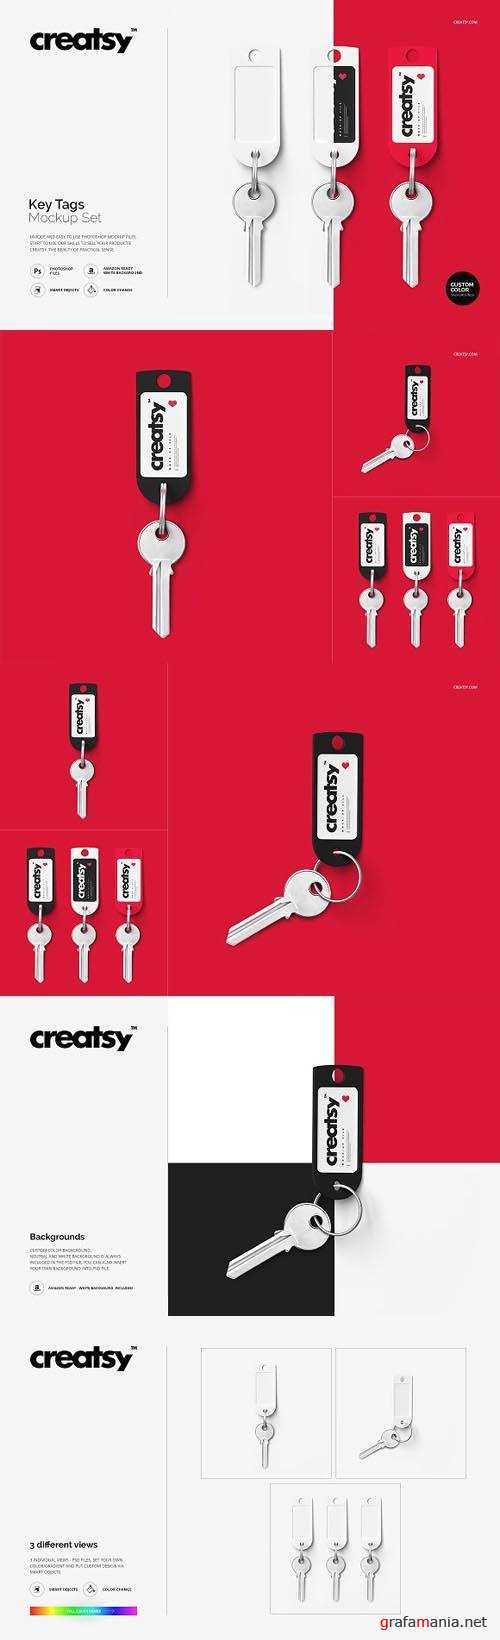 Key Tags Mockup Set 1447629